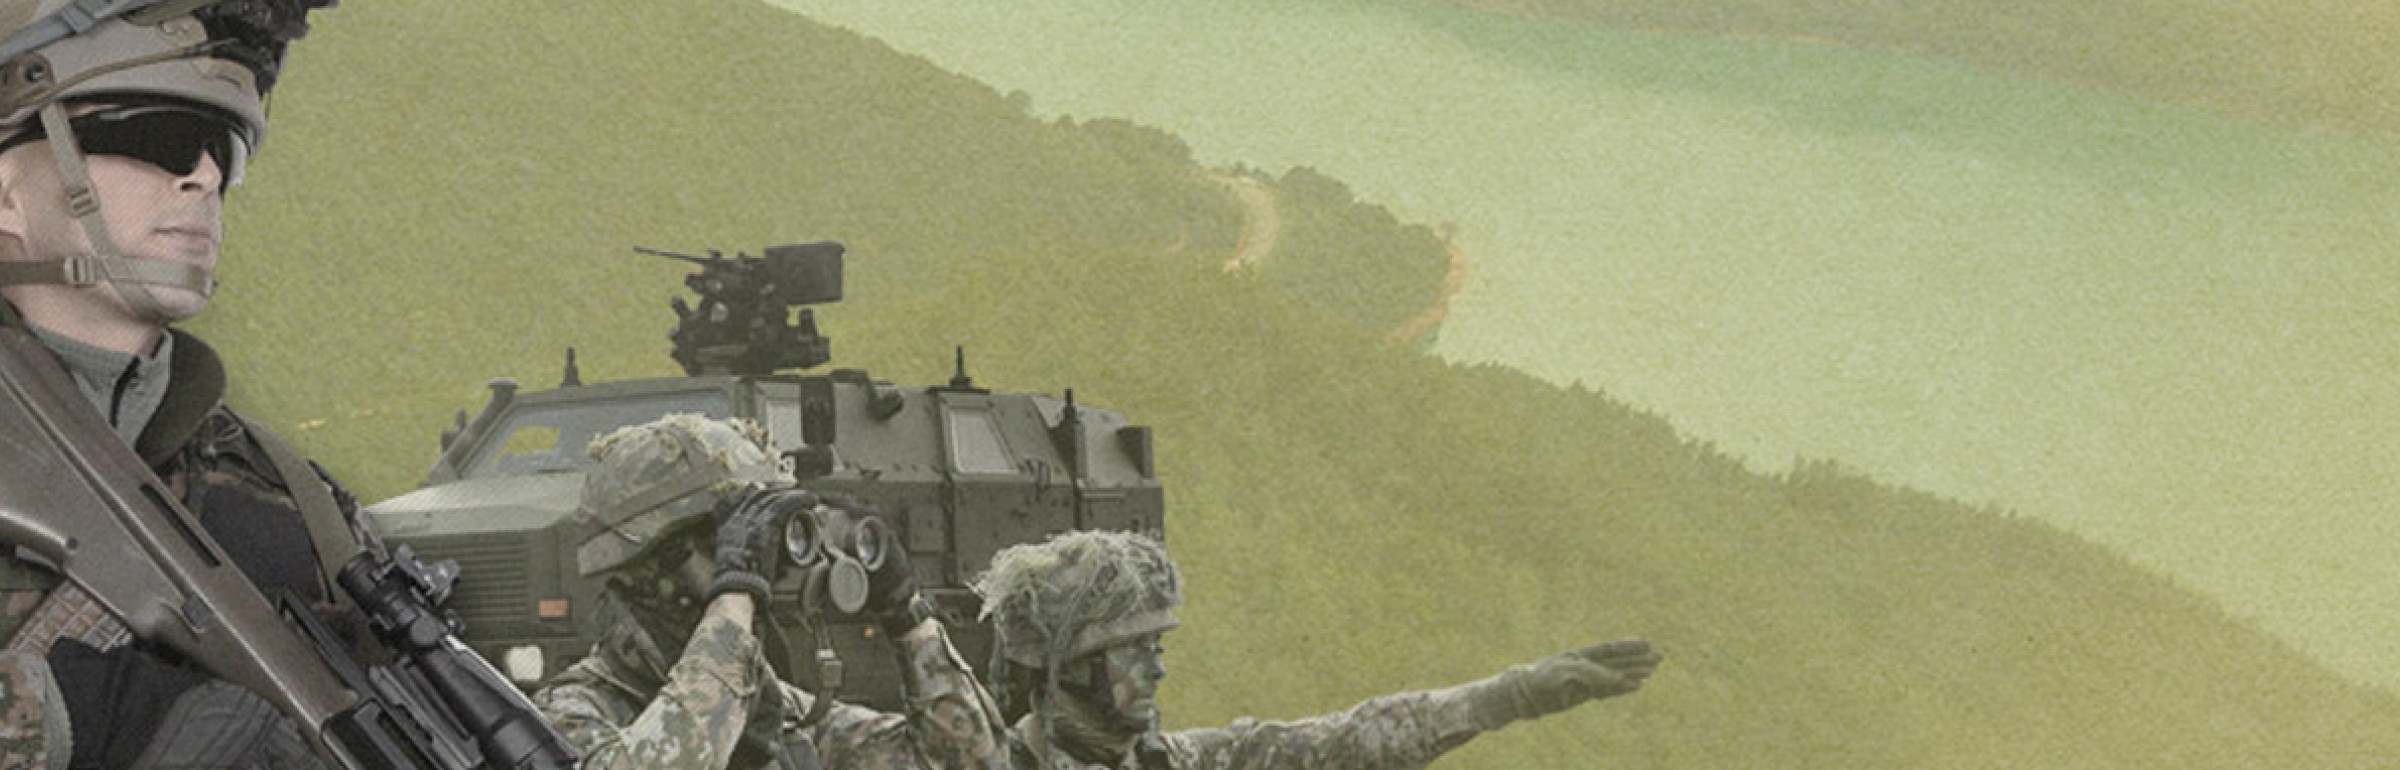 Banner Armée luxembourgeoise